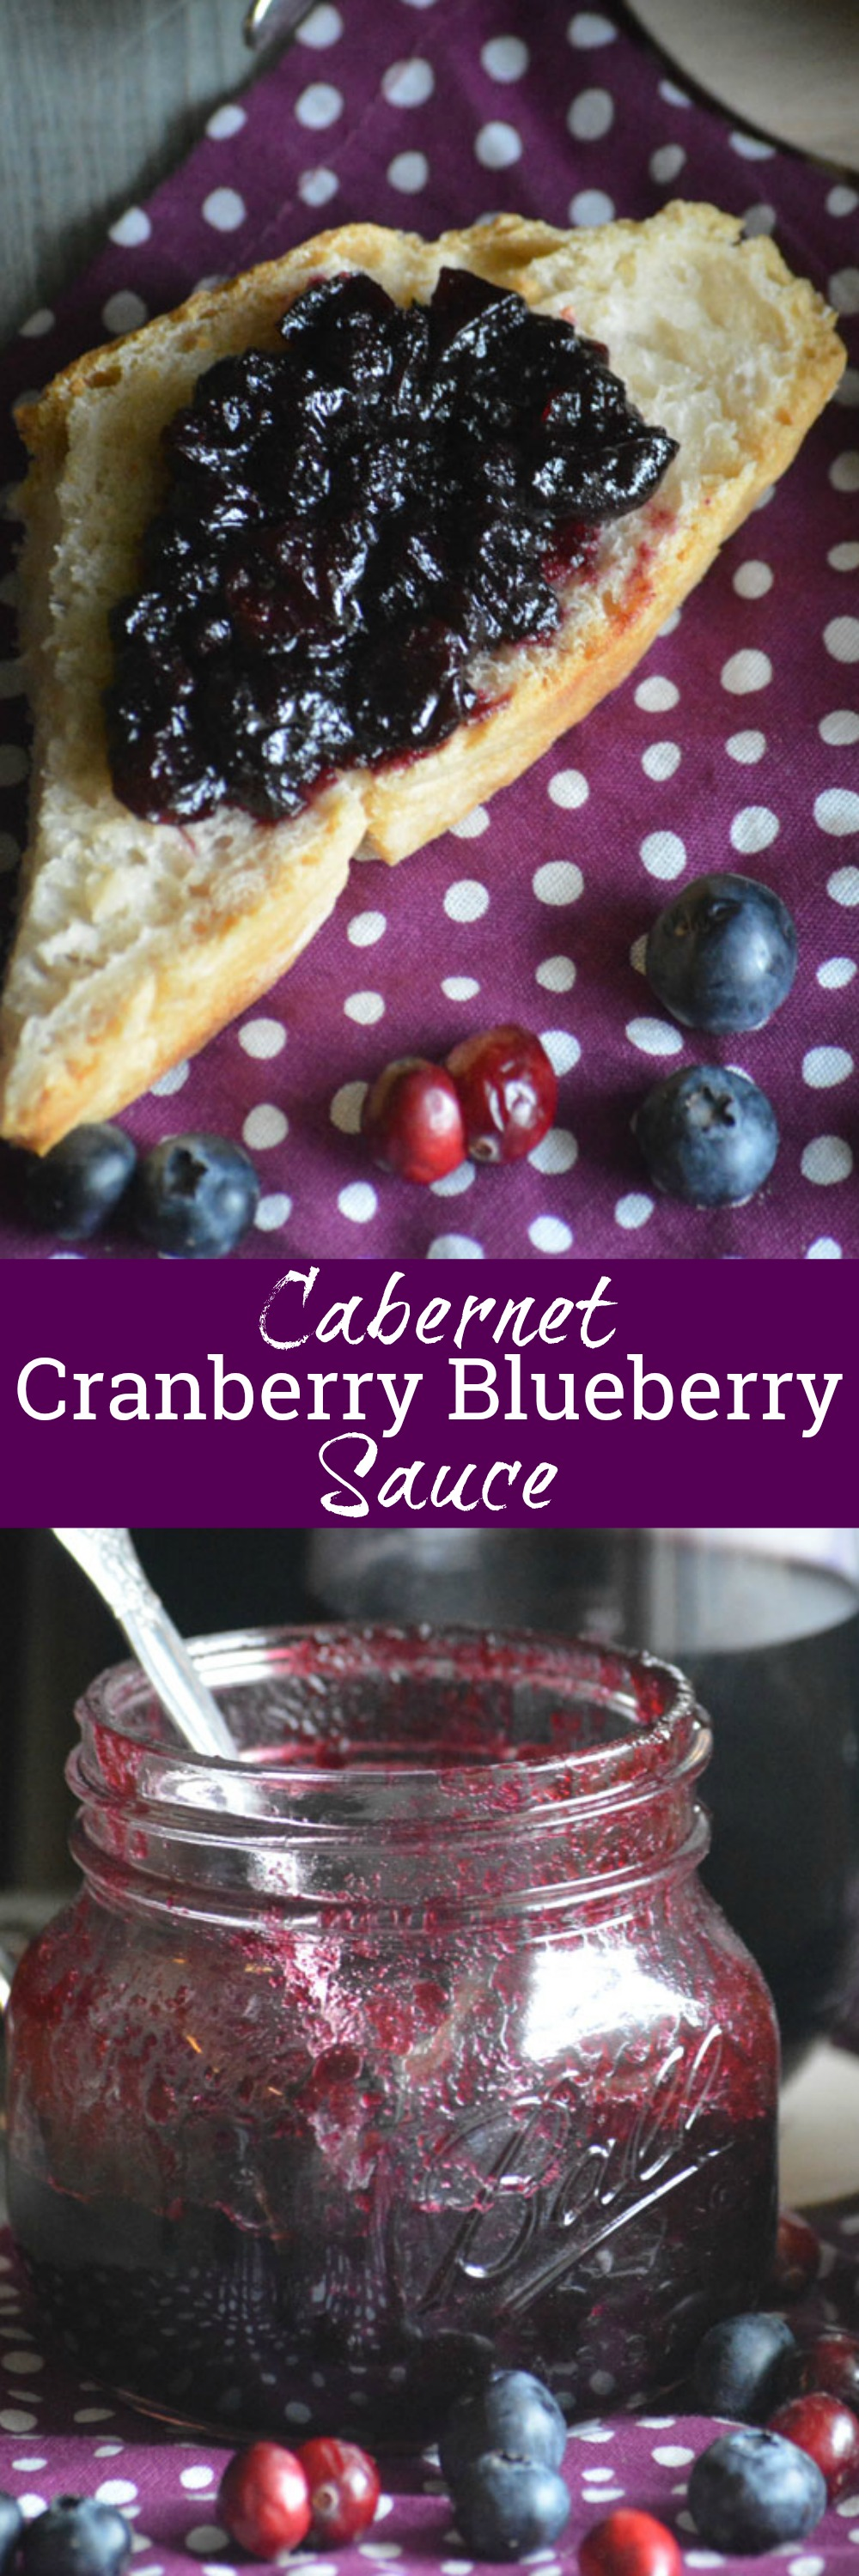 A thick sauce, somewhere in between jam & jelly, this Cabernet Cranberry and Blueberry Sauce is a delicious addition to your holiday meals. Keep any extras on hand to slather on bread or toast for a simple breakfast or snack that's bursting with fresh sweet berry flavor and a hint of wine.